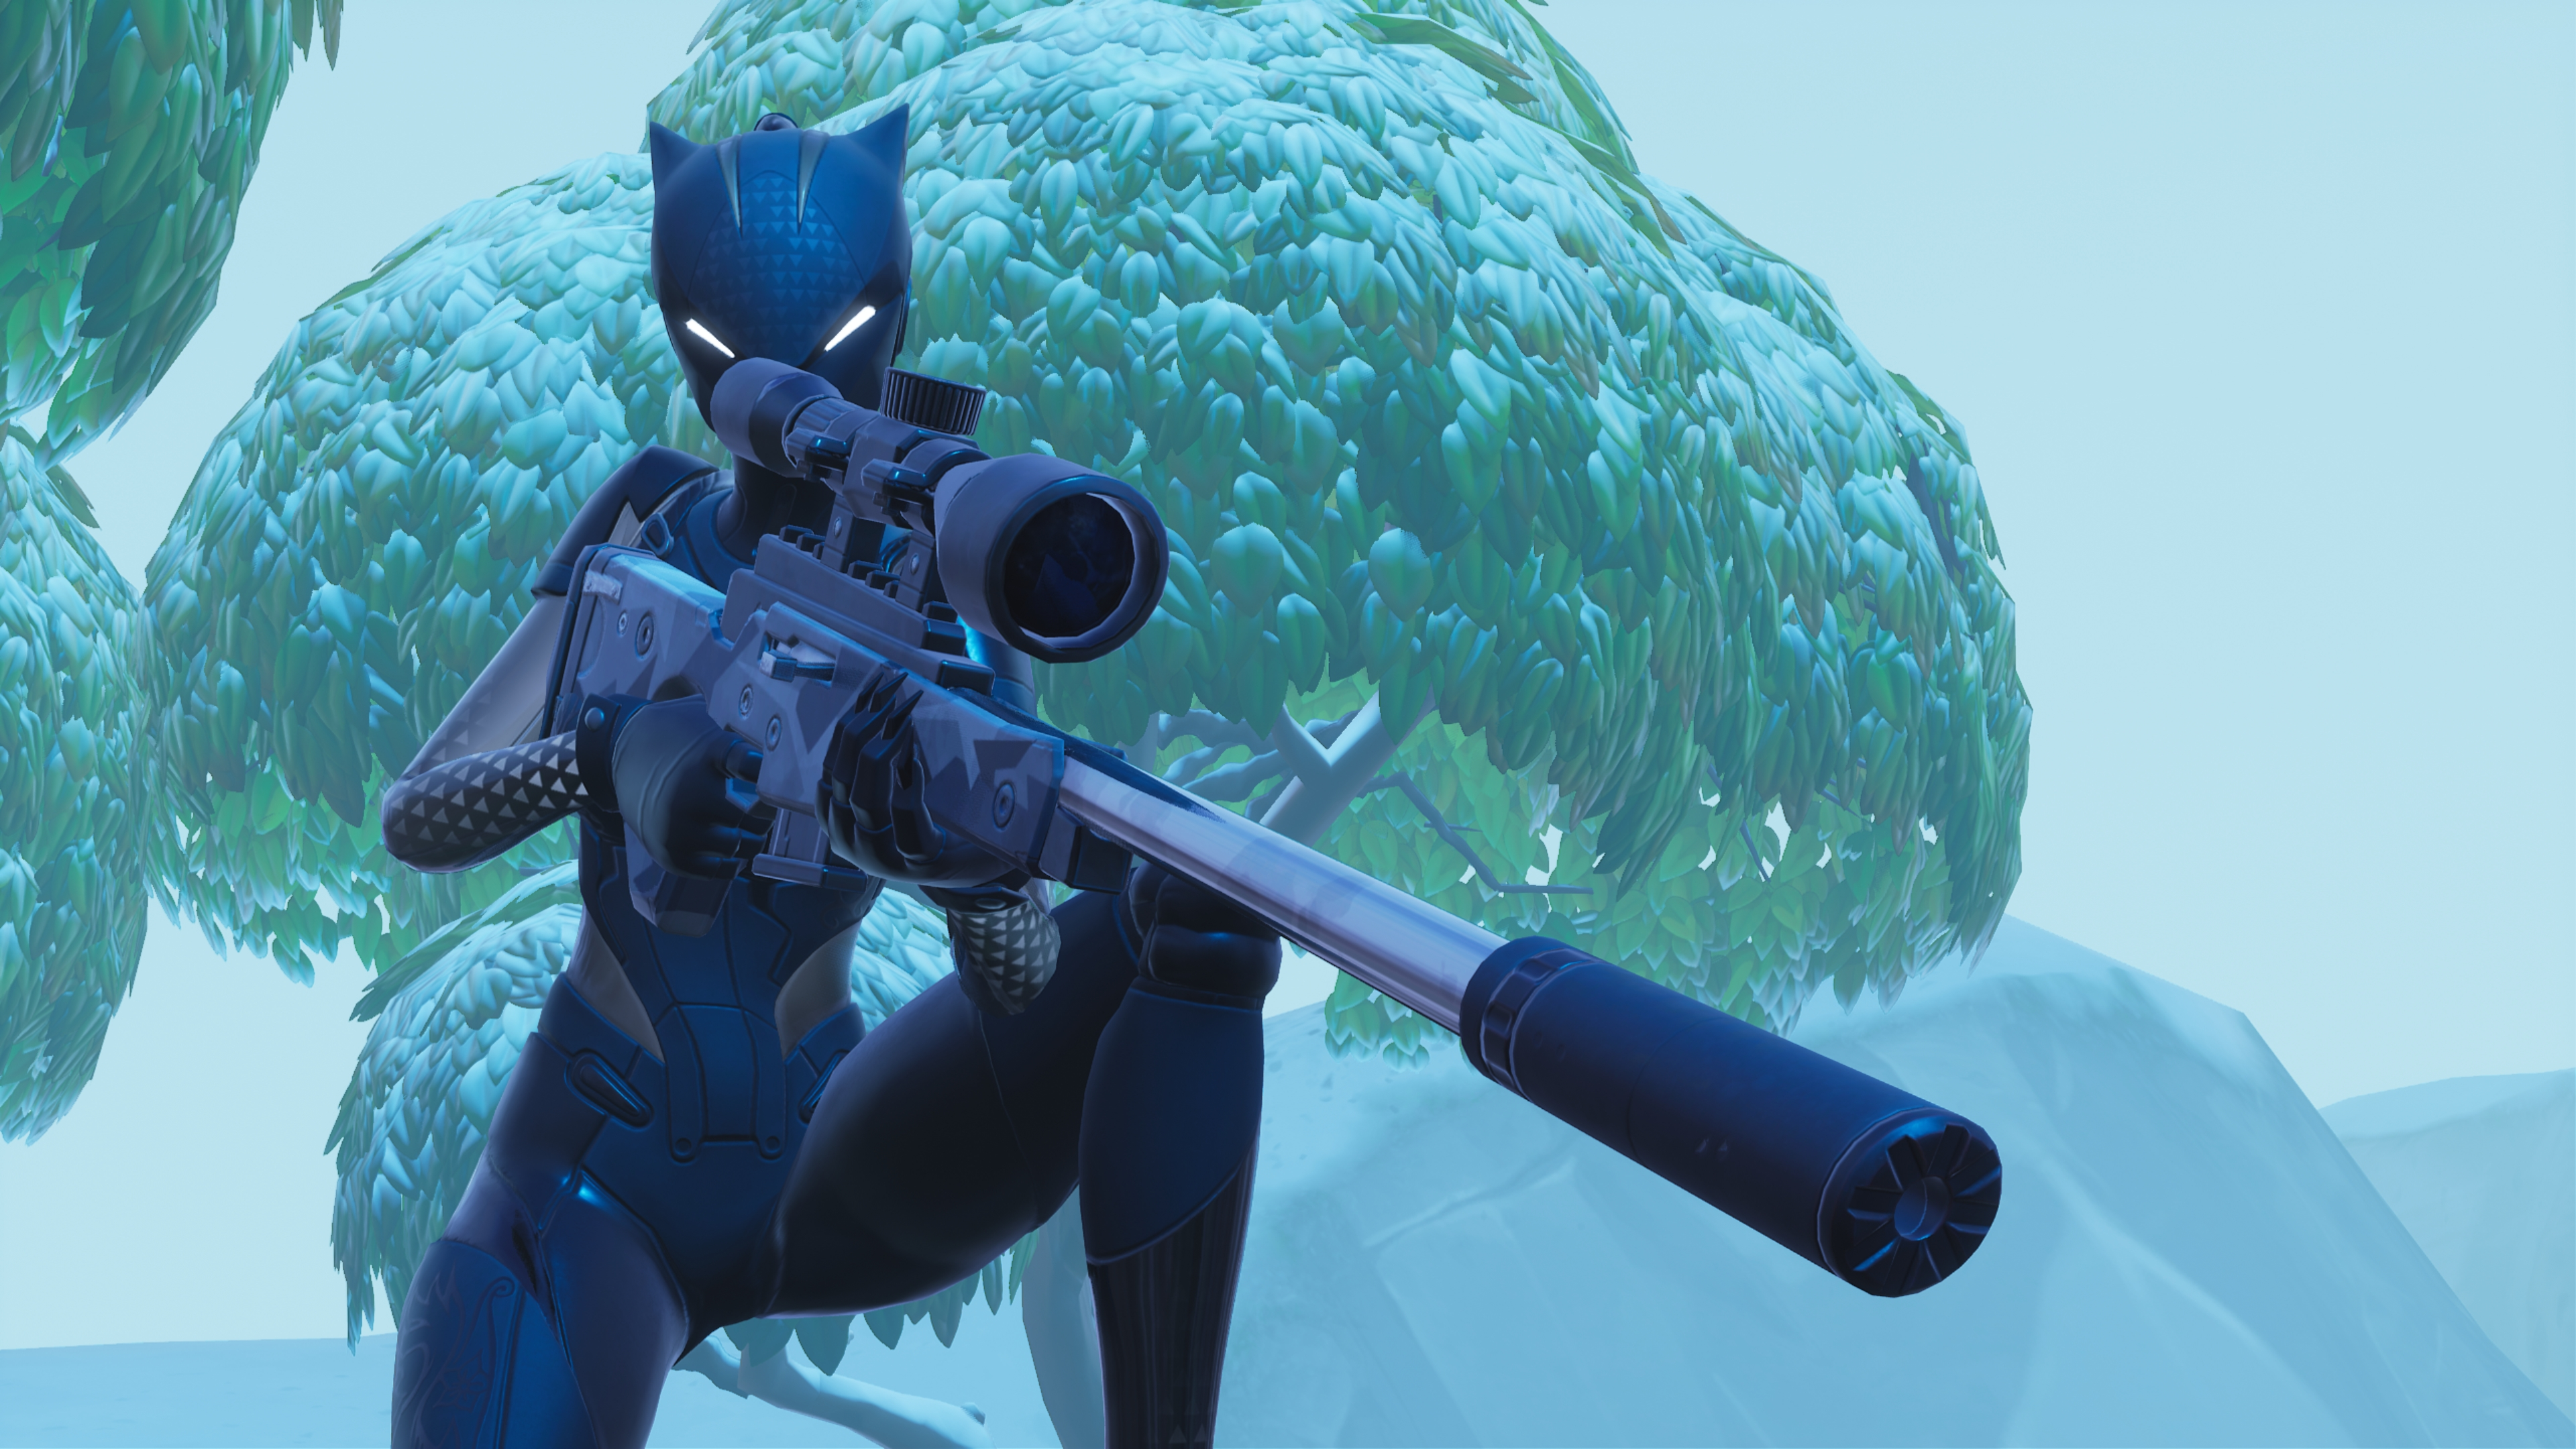 Fondos de pantalla Fortnite Lynx Black Edition